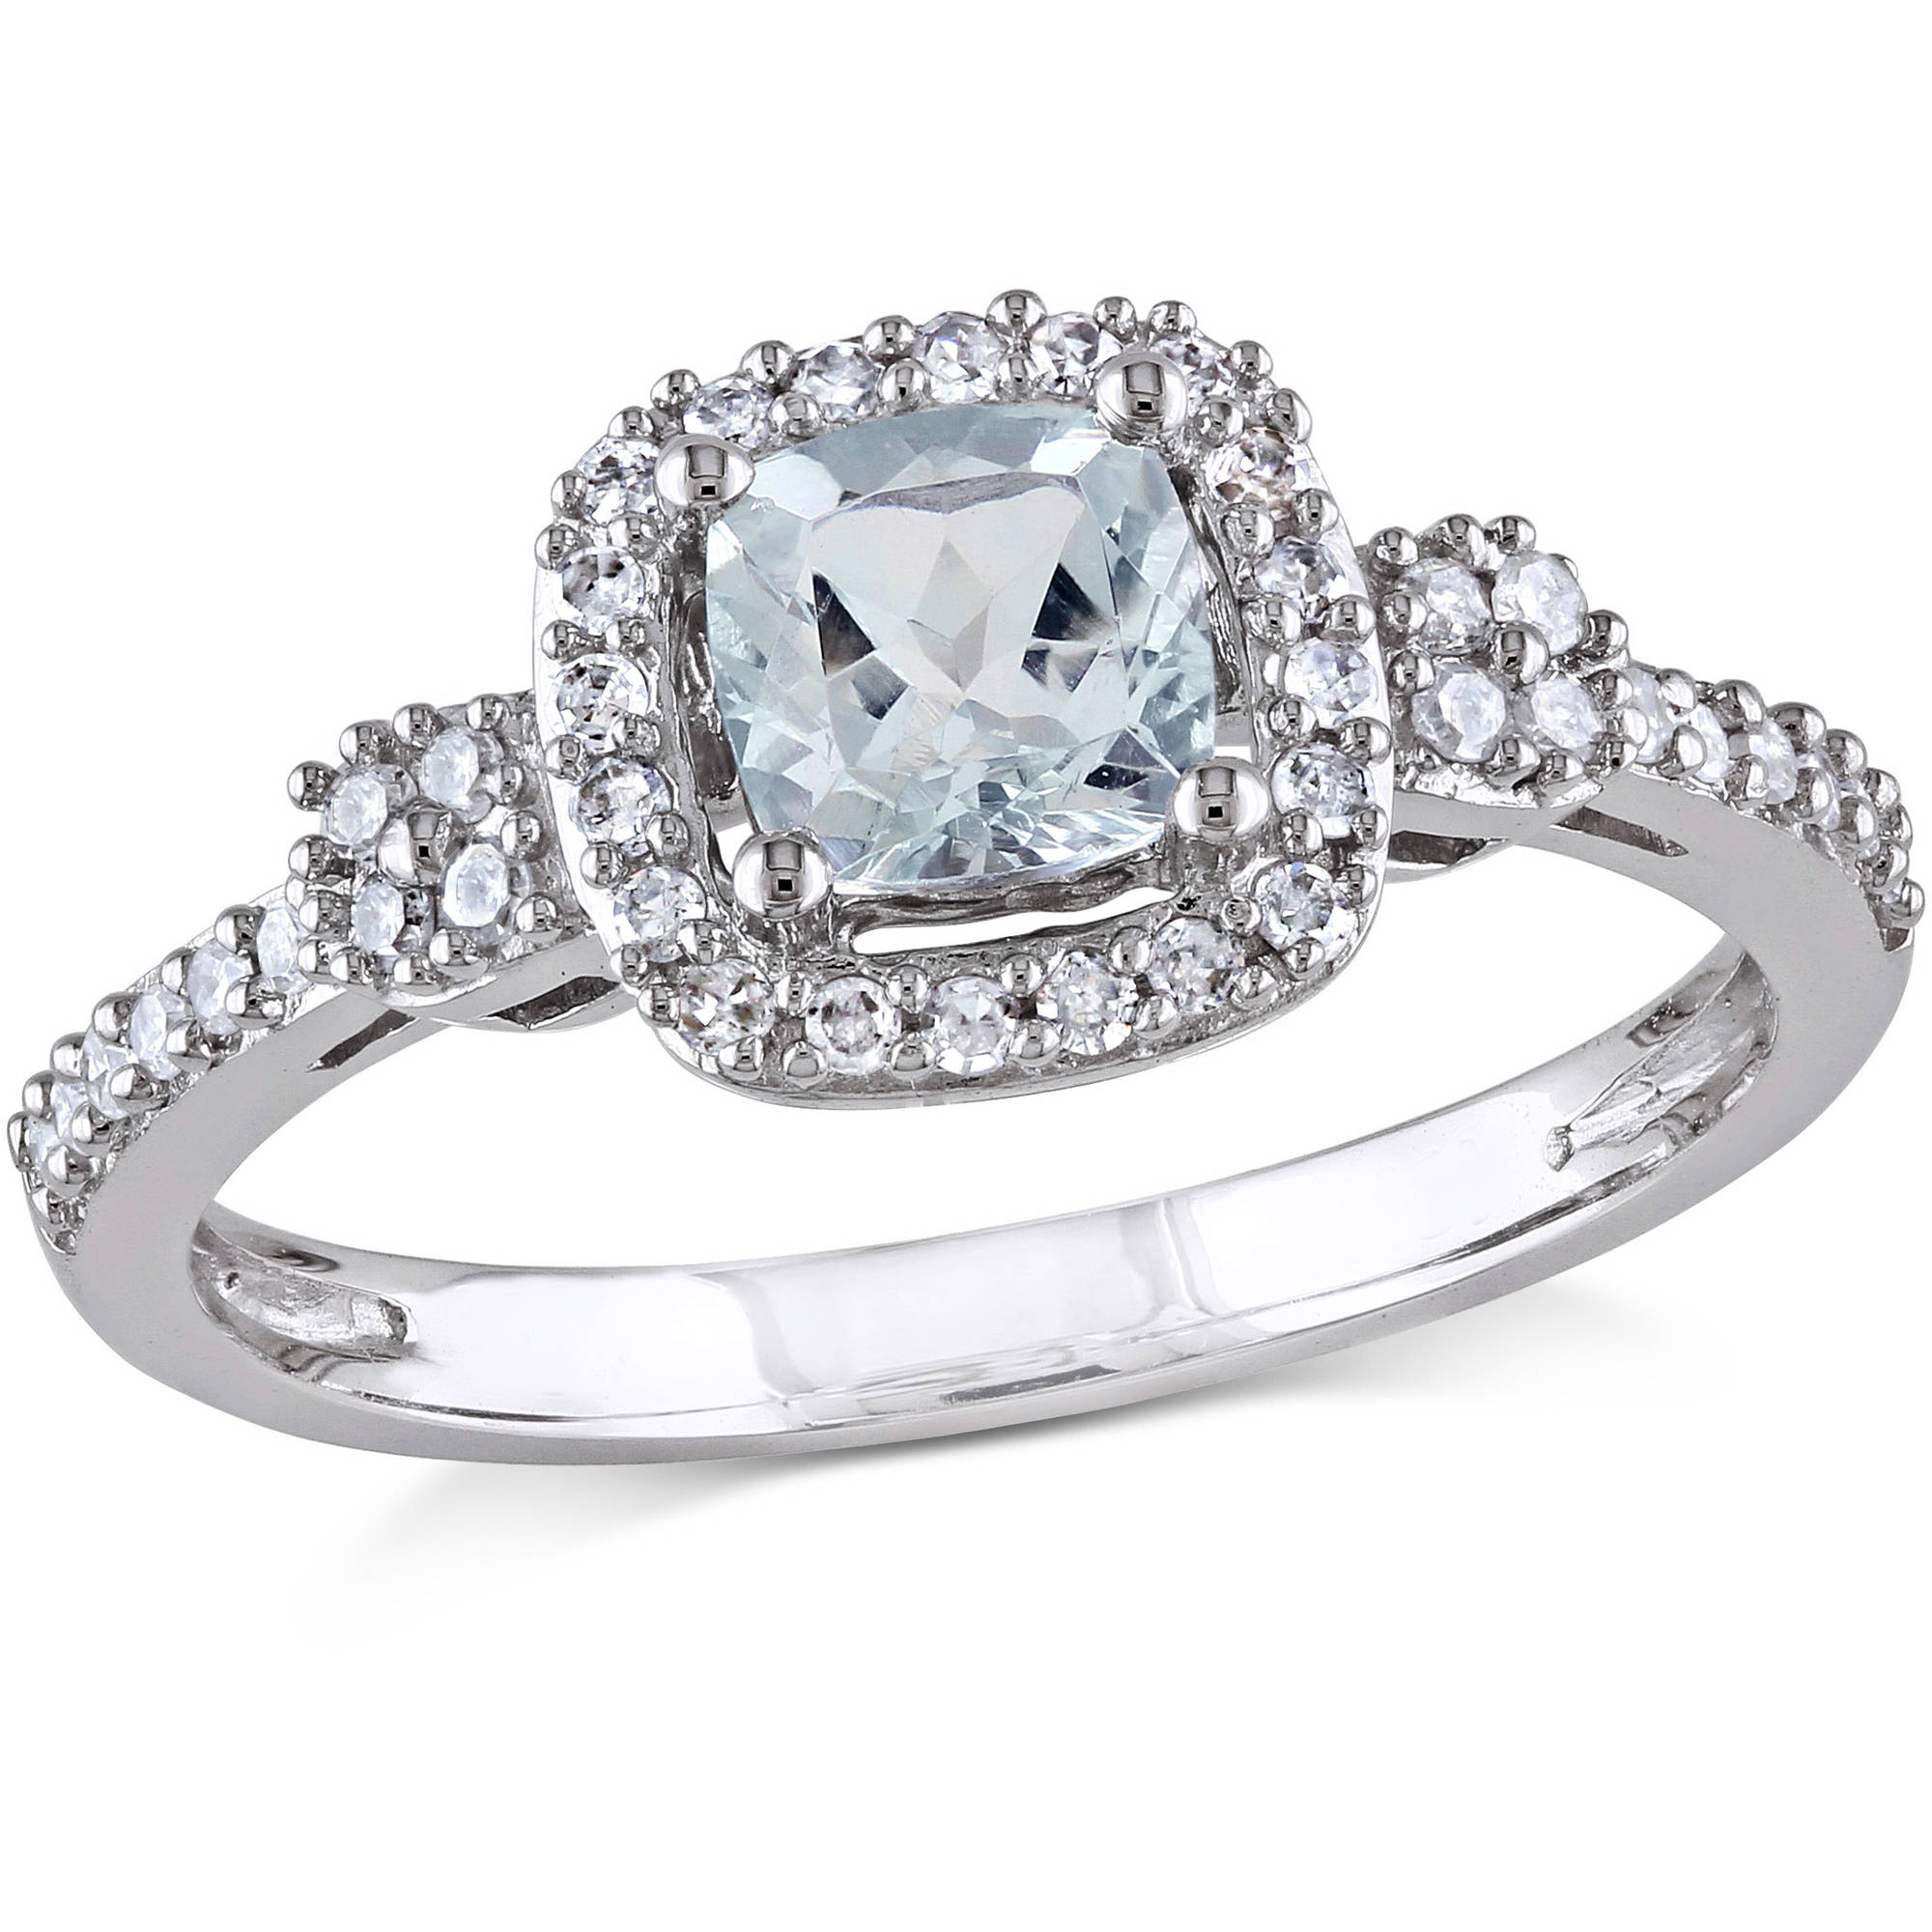 Tangelo 1 2 Carat T.G.W. Aquamarine and 1 6 Carat T.W. Diamond 10kt White Gold Halo Engagement Ring by Tangelo